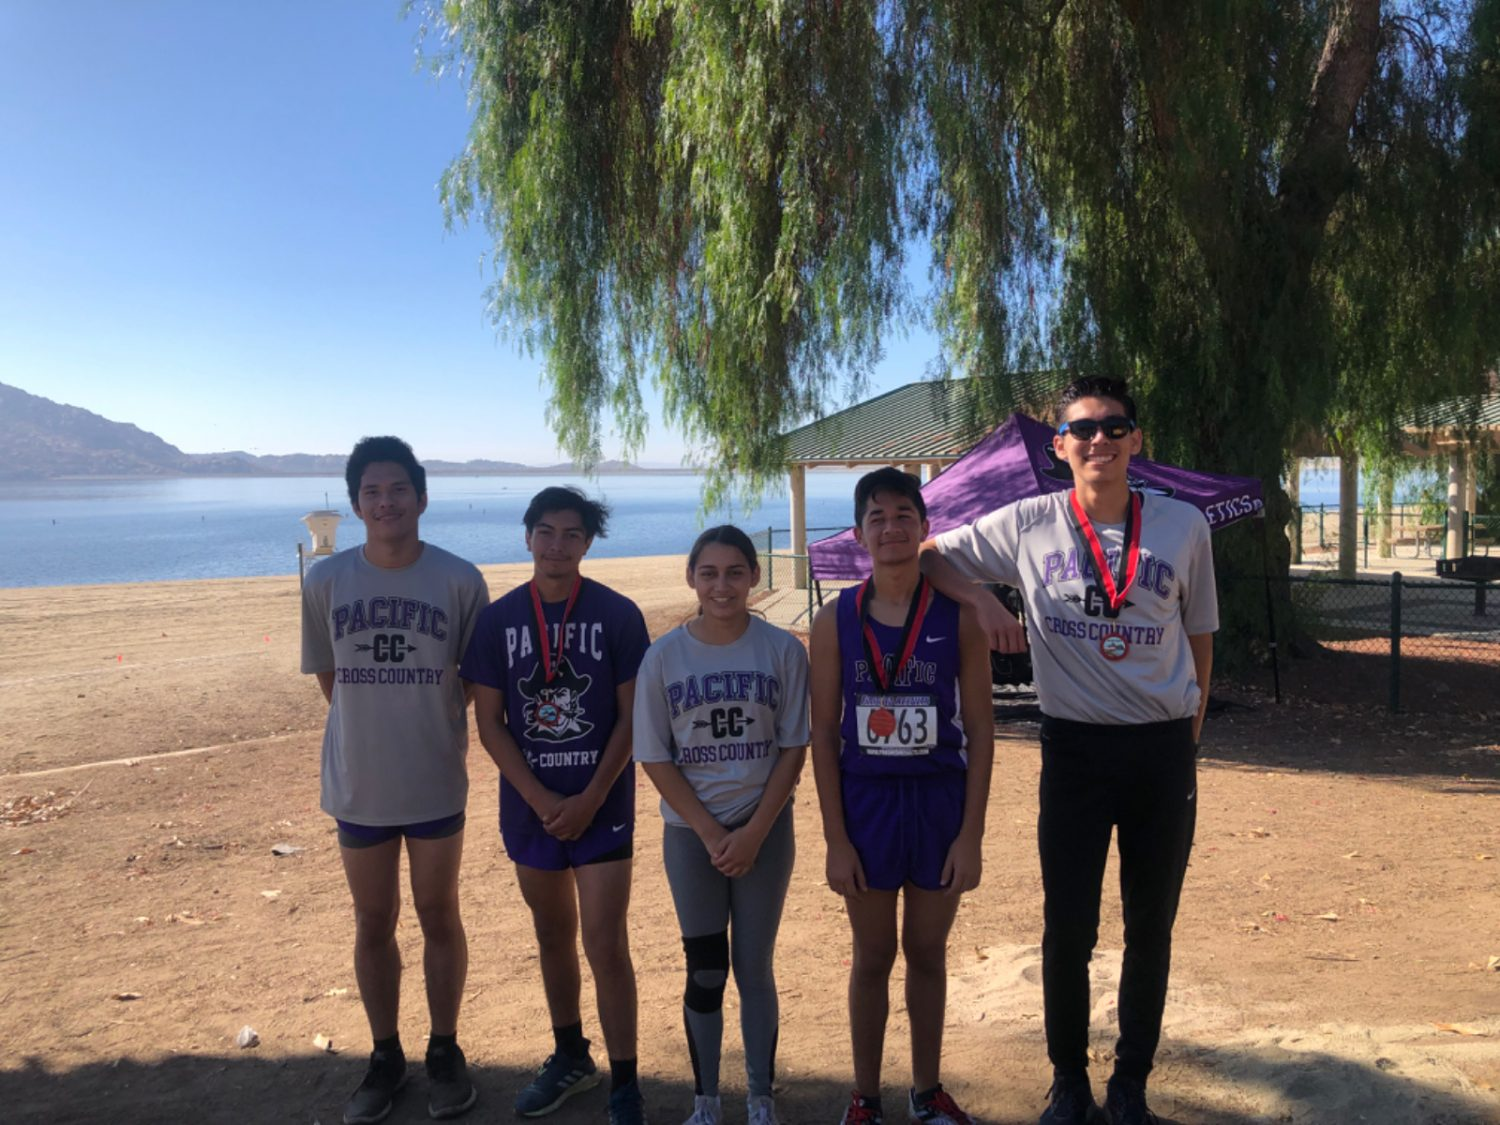 XC Team Brings Home Hardware from the Inland Empire Challenge